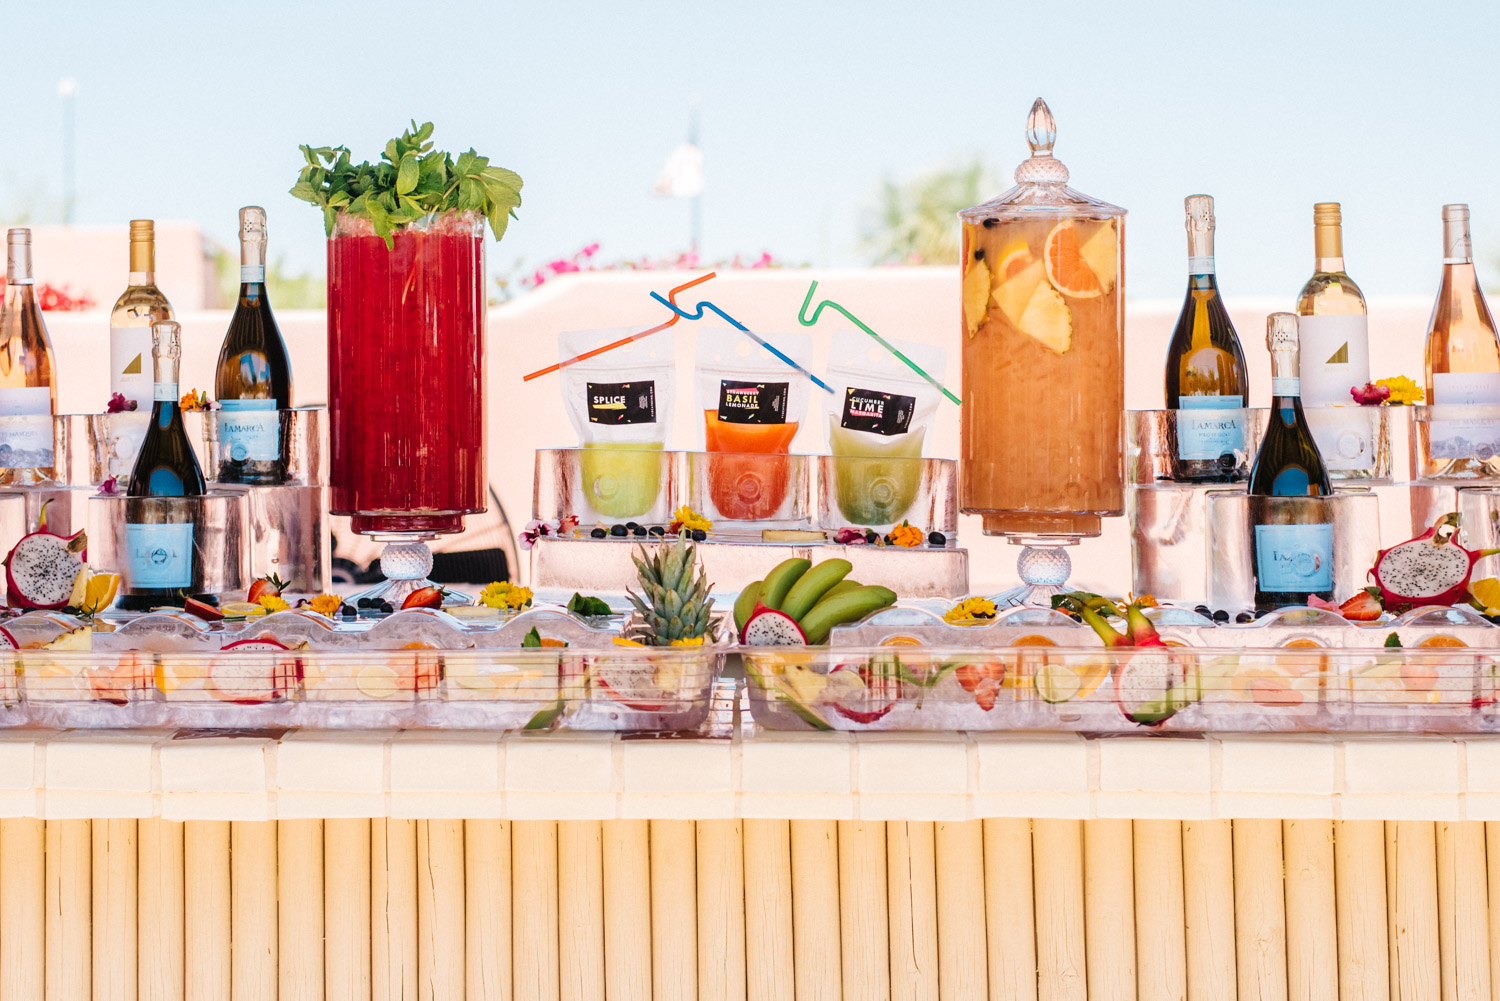 Desert Chill Cocktails + Mocktails by  F10 Catering   image credit:  Sarah Dickenson